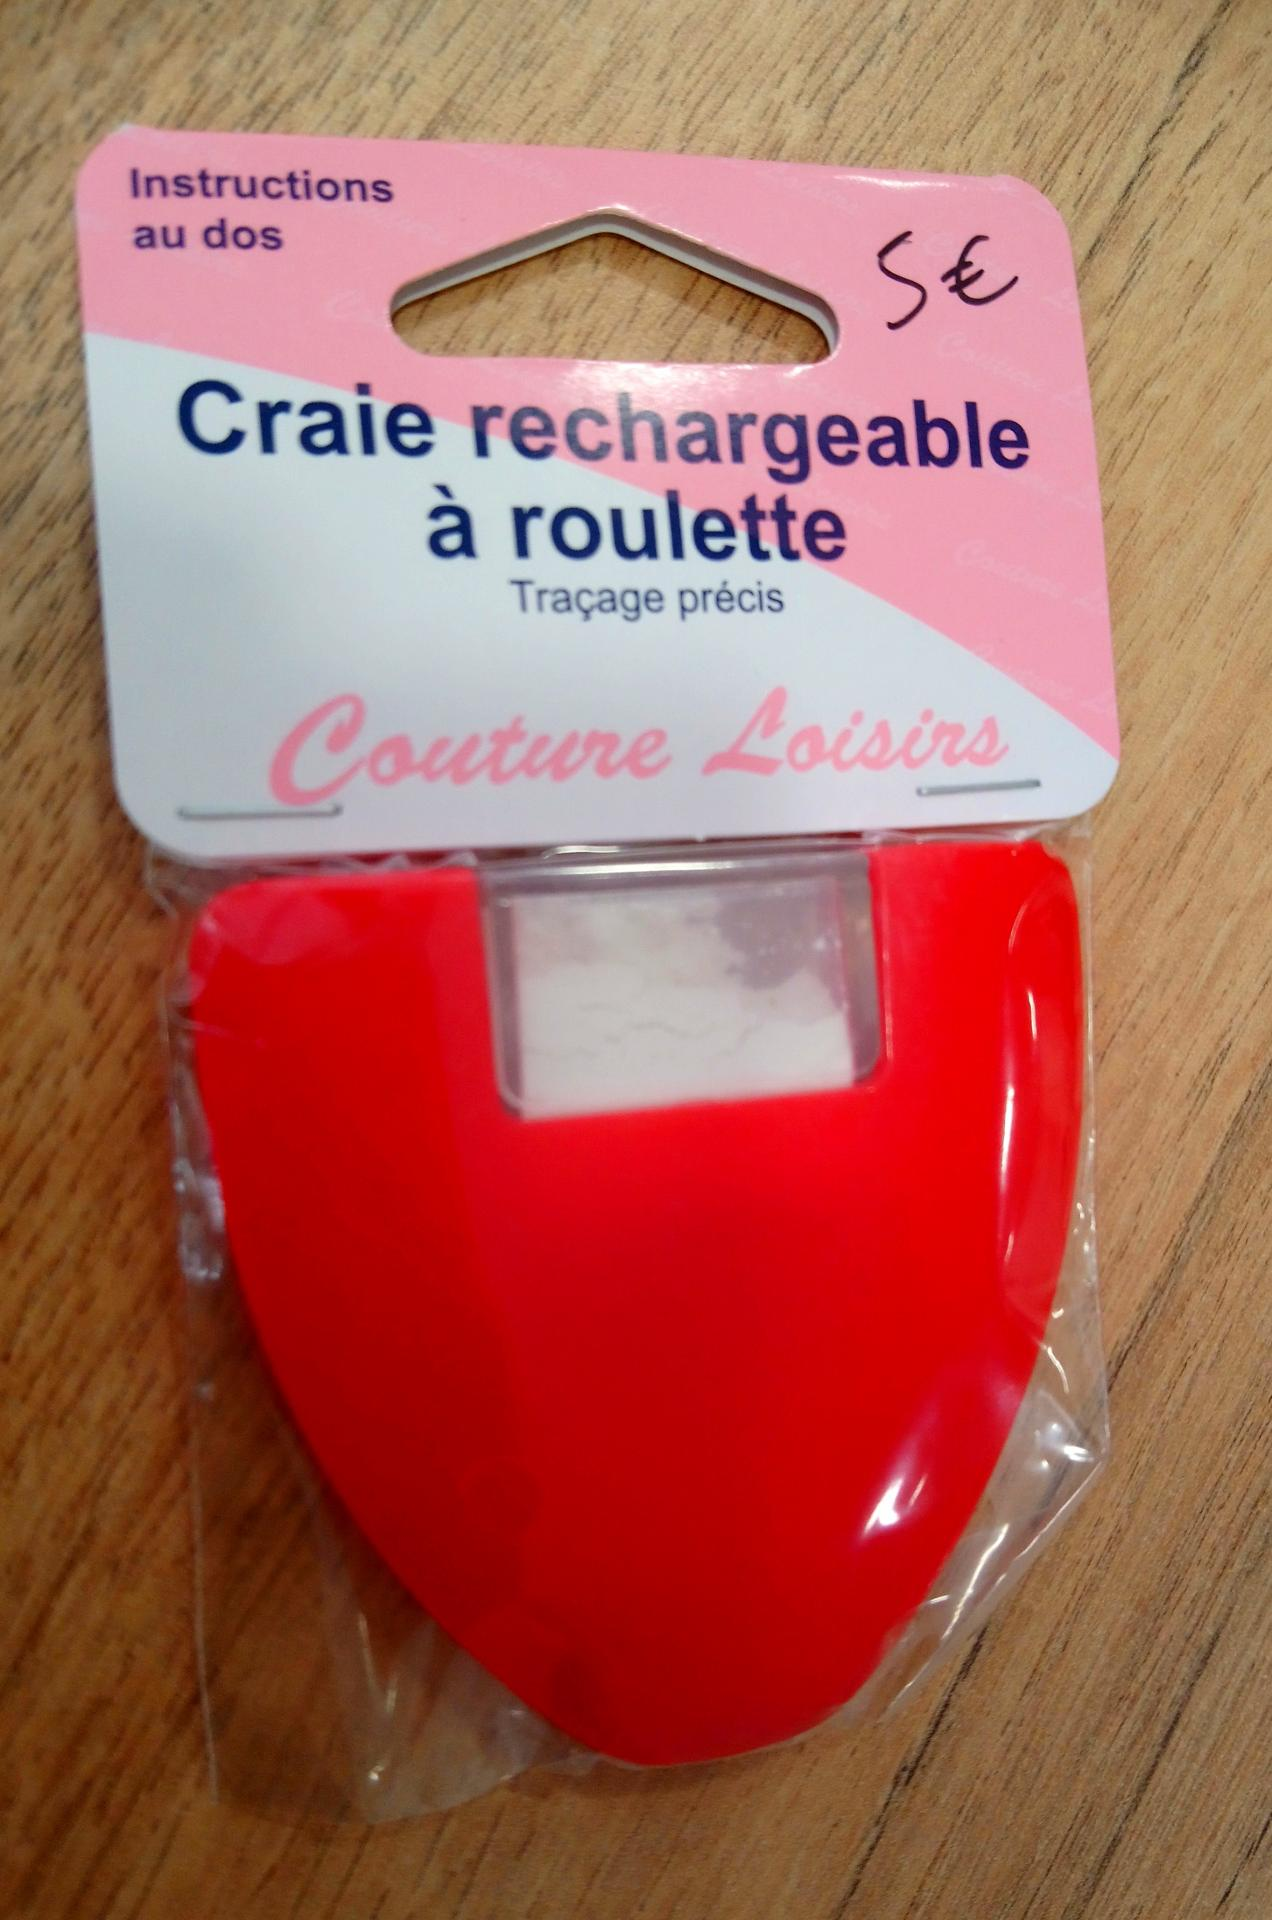 Craie rechargeable